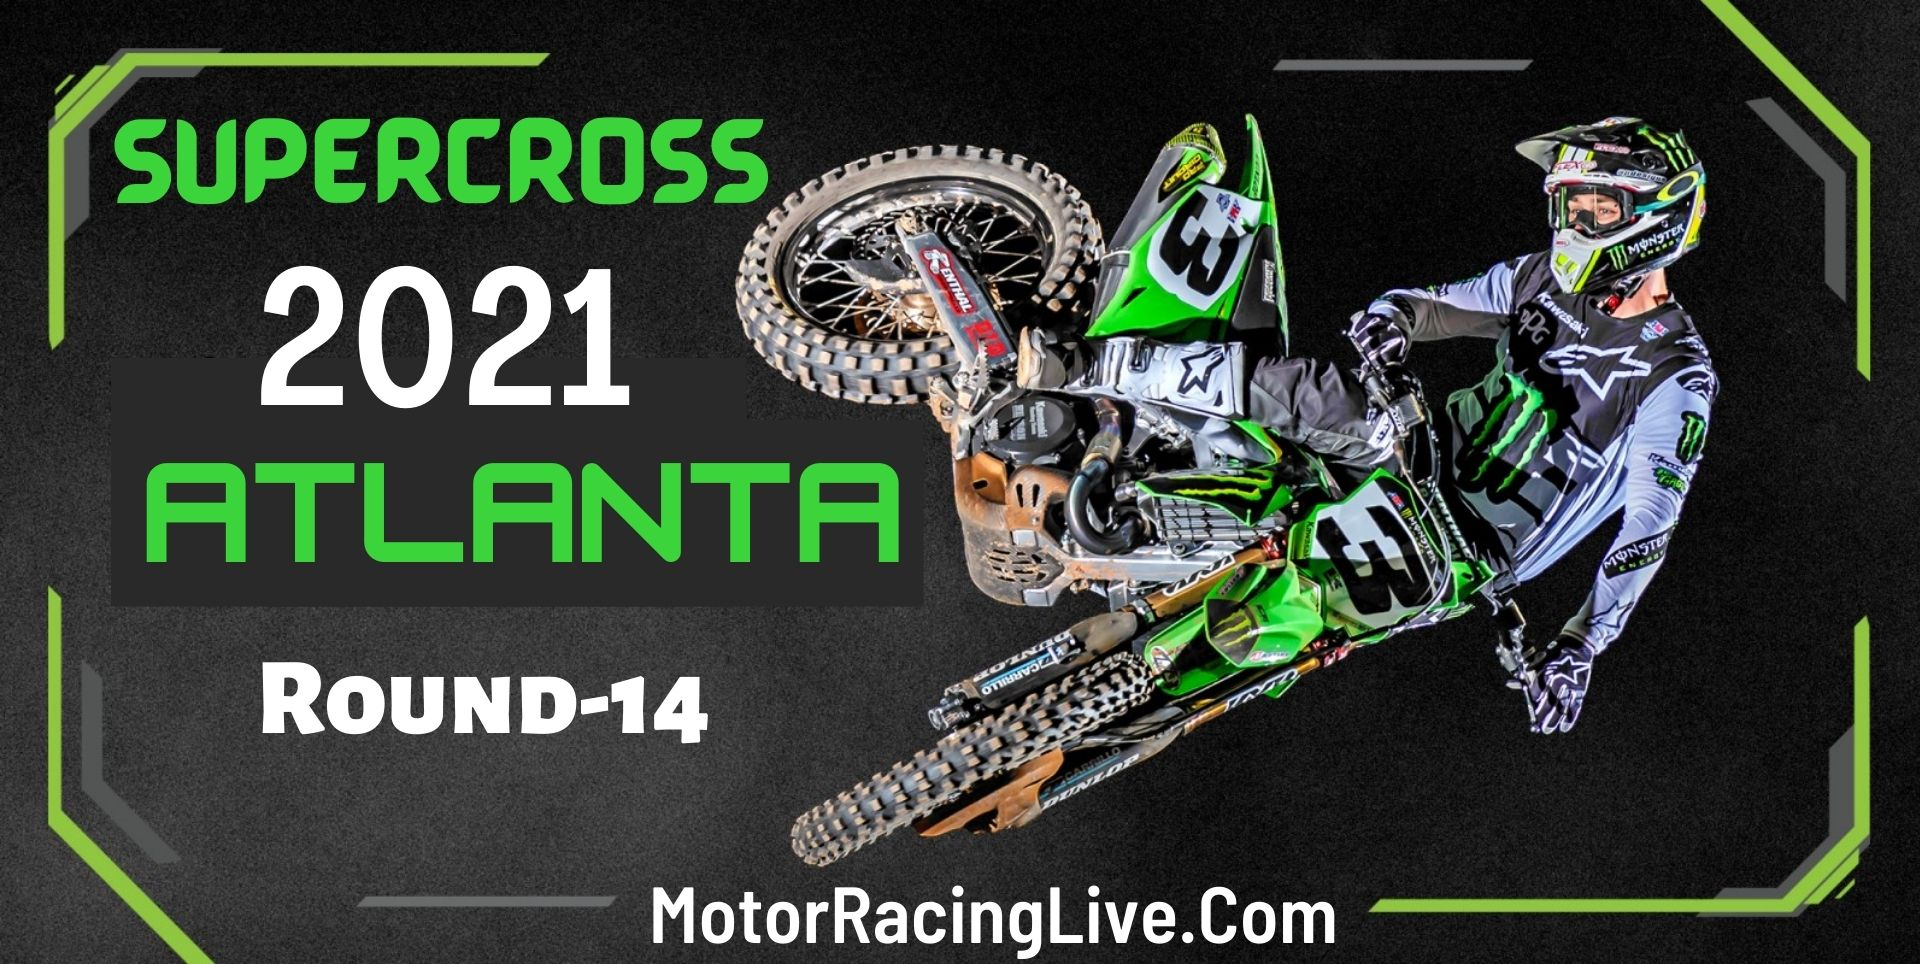 Supercross Atlanta Rd 14 Live 13-Apr 2021